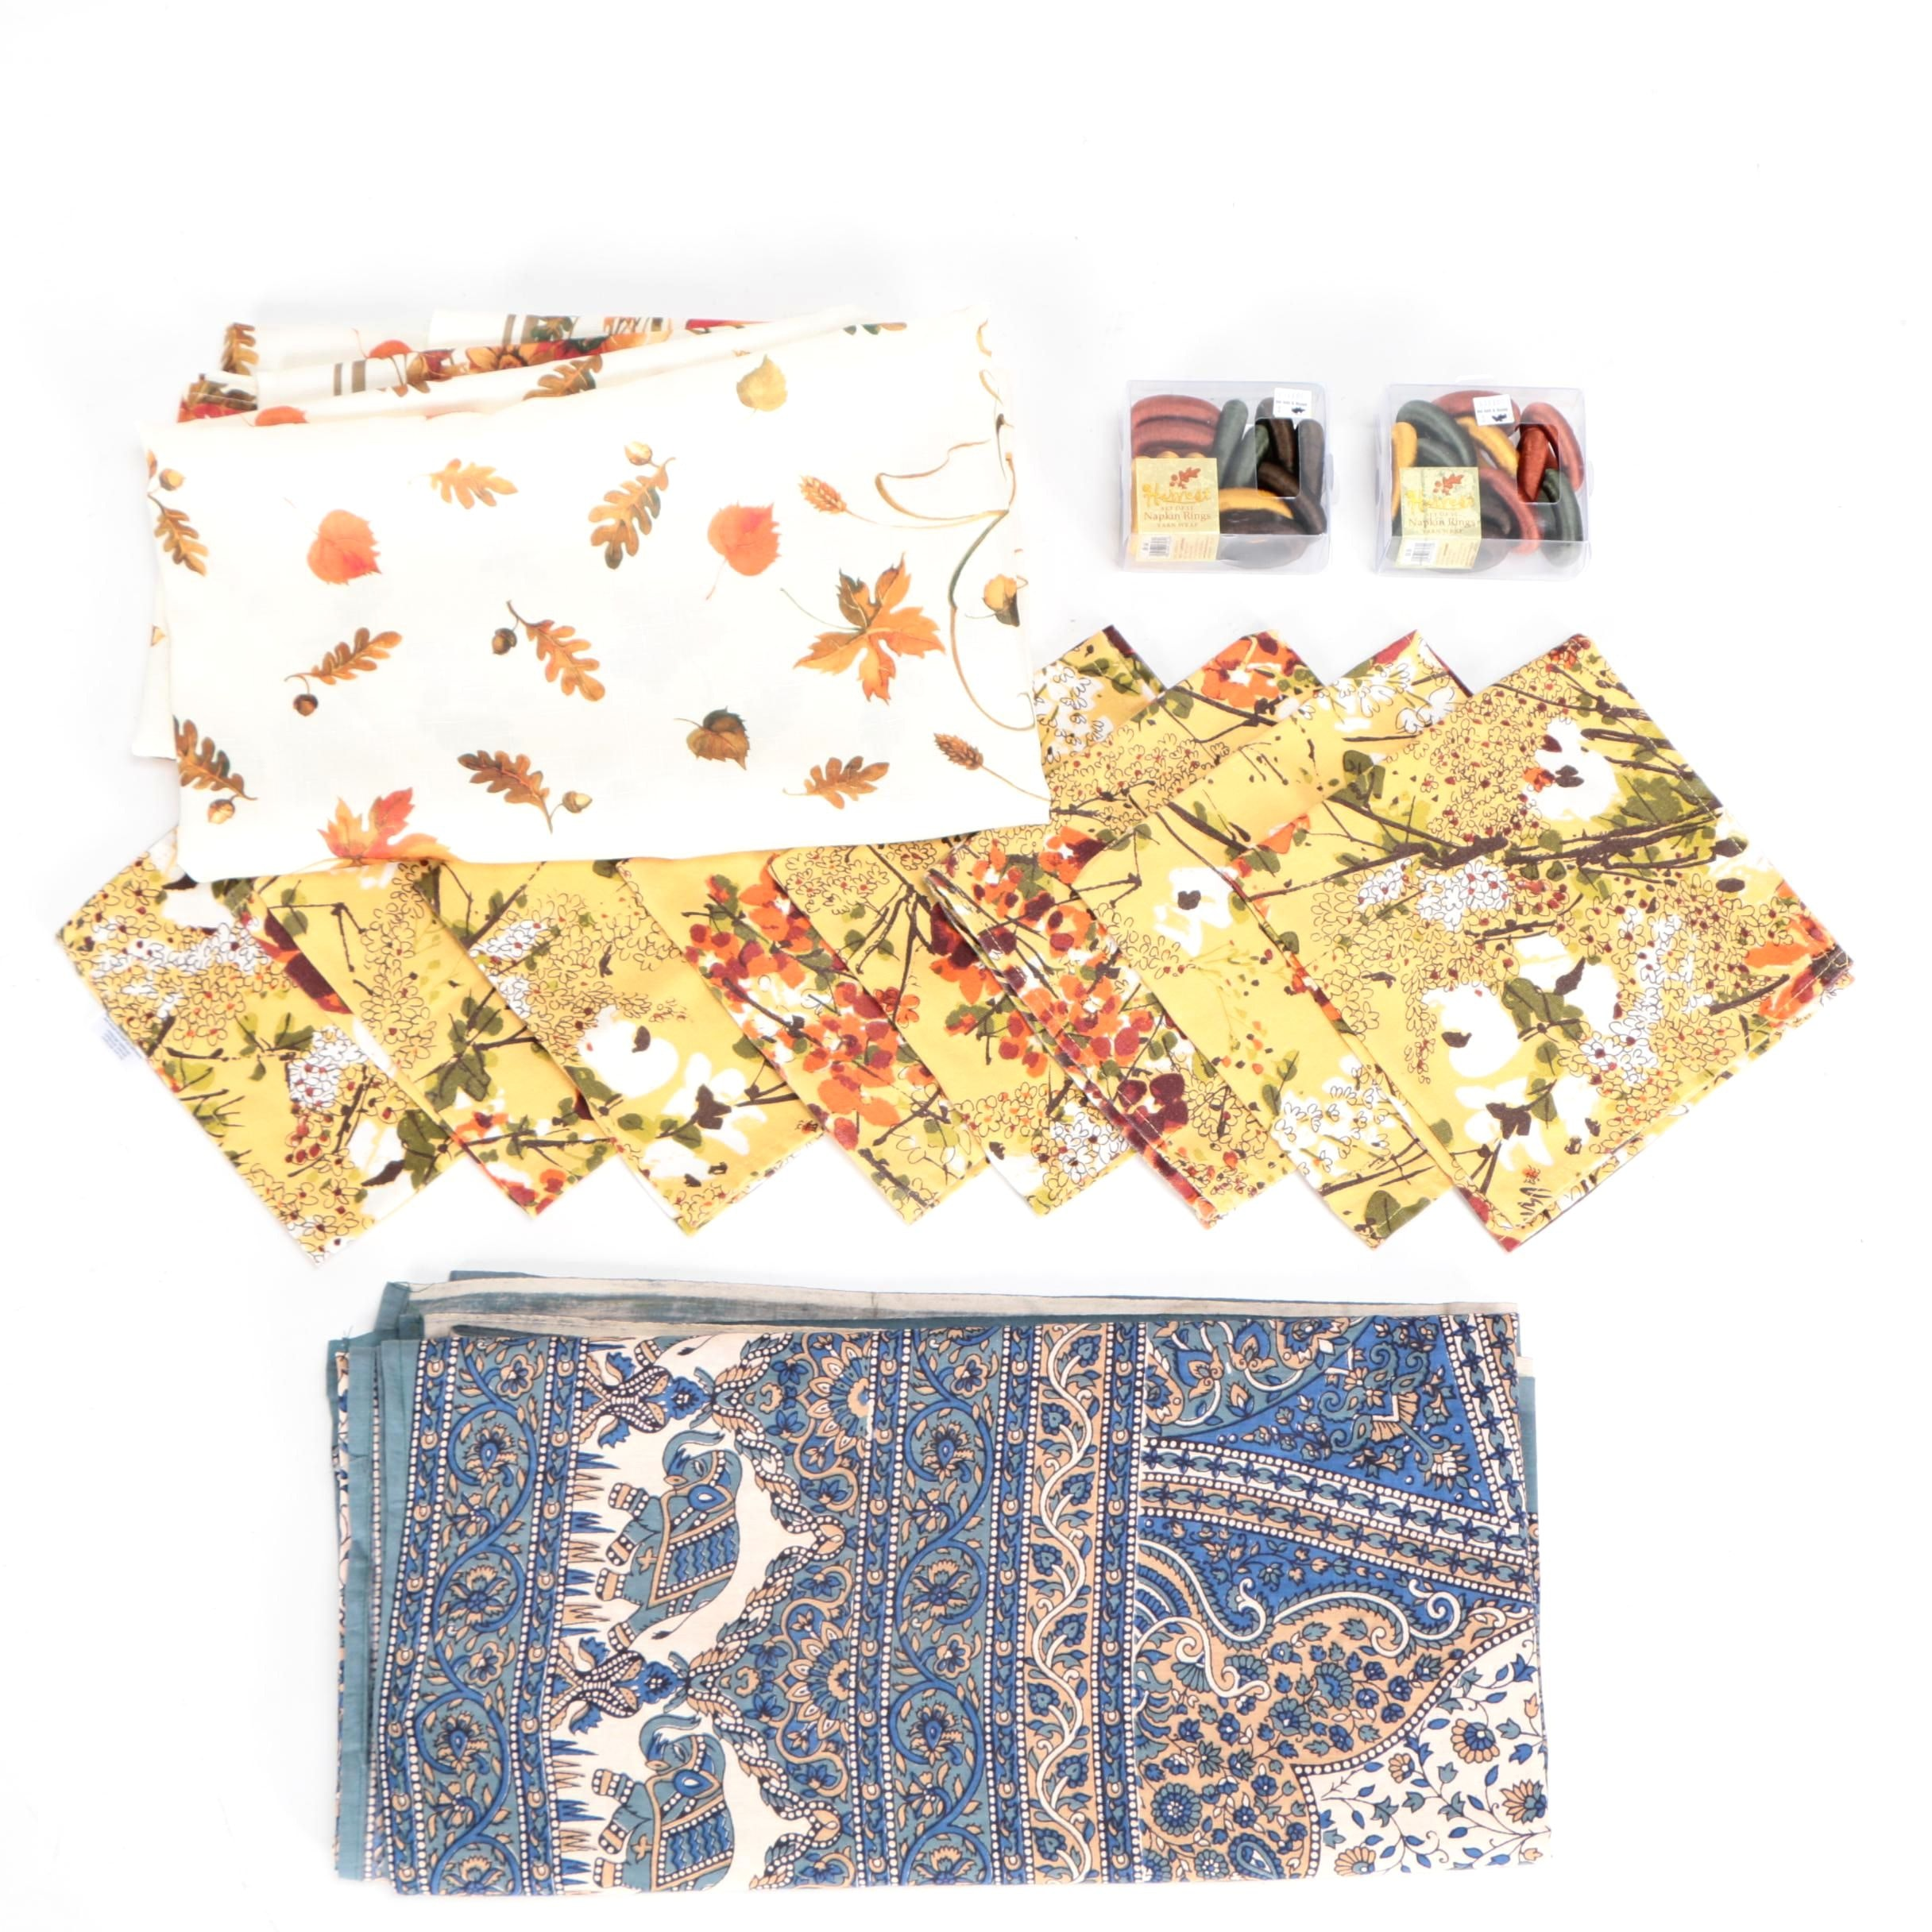 Vera Neumann Napkins, with Tablecloth, Napkin Rings, and Indian Style Tapestry